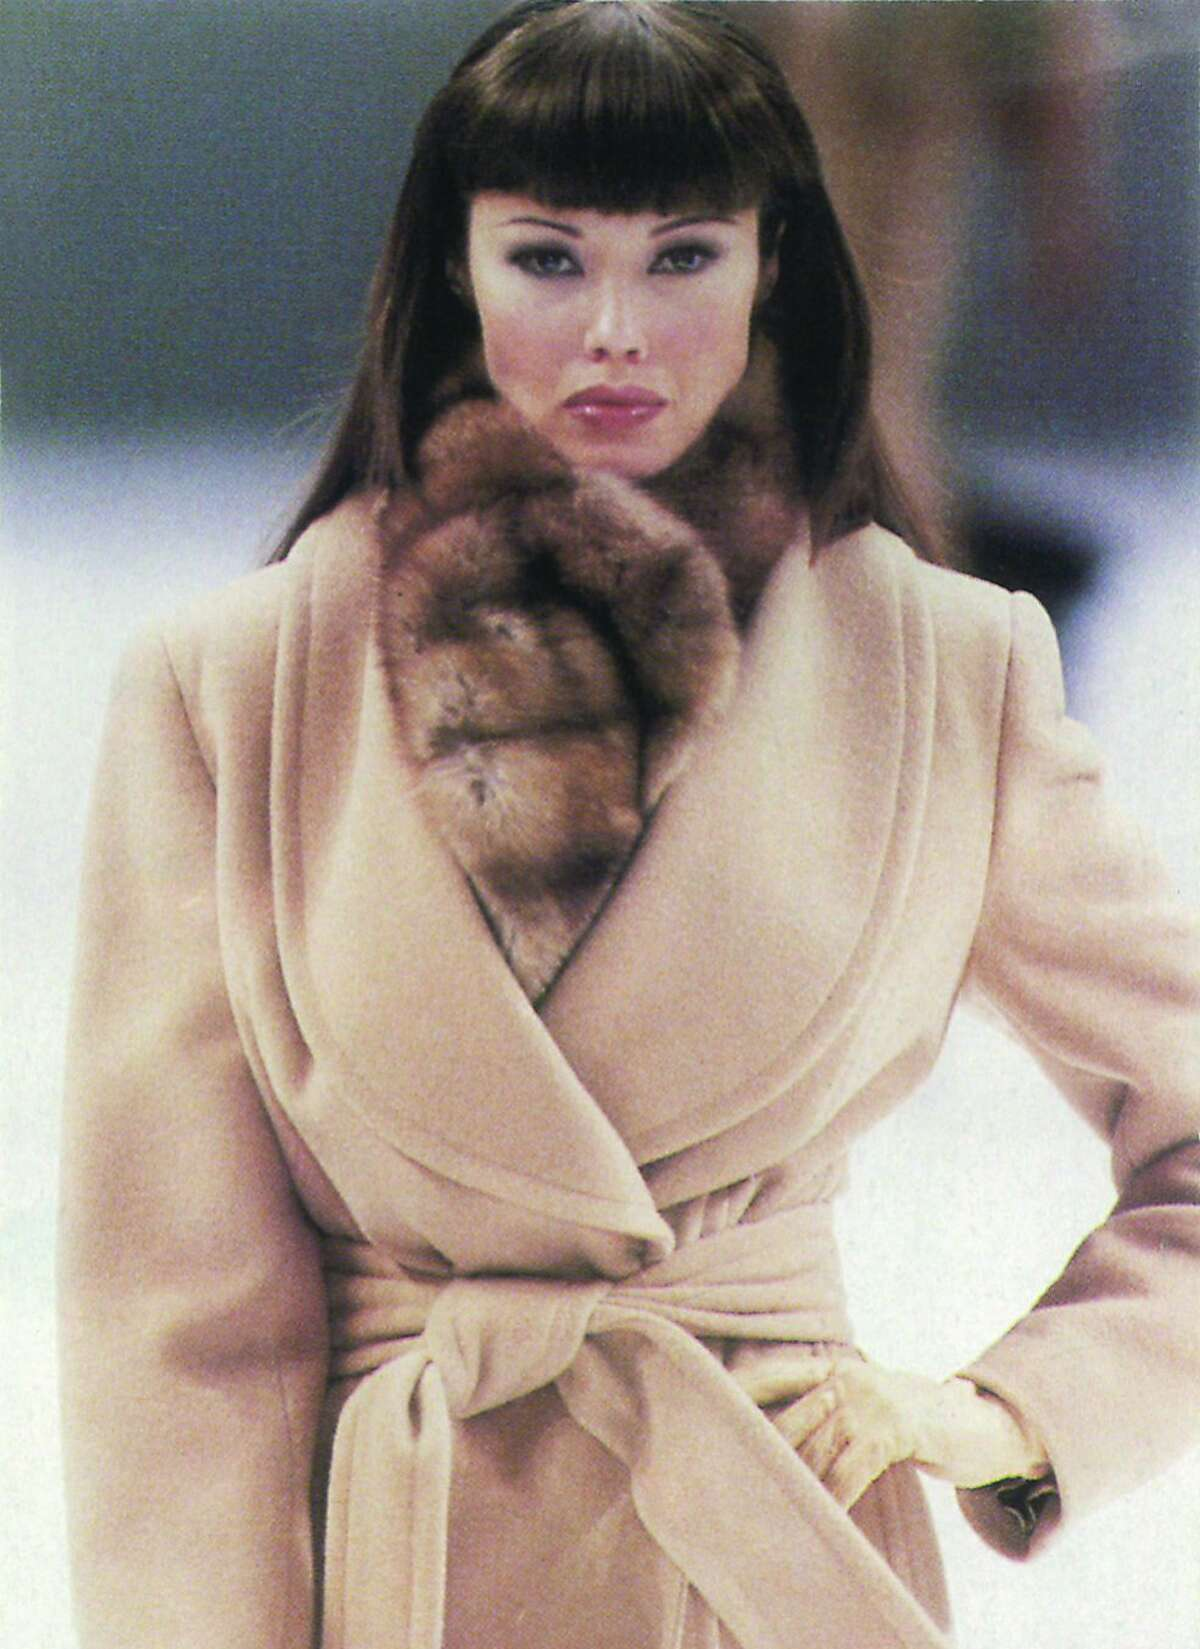 """An exhibition called """"Extending the Runway: Tatiana Sorokko Style"""" opens April 2 in Moscow's Russian Fashion Museum. Tatiana on the Gianfranco Ferre runway, in the early to mid 1990s."""